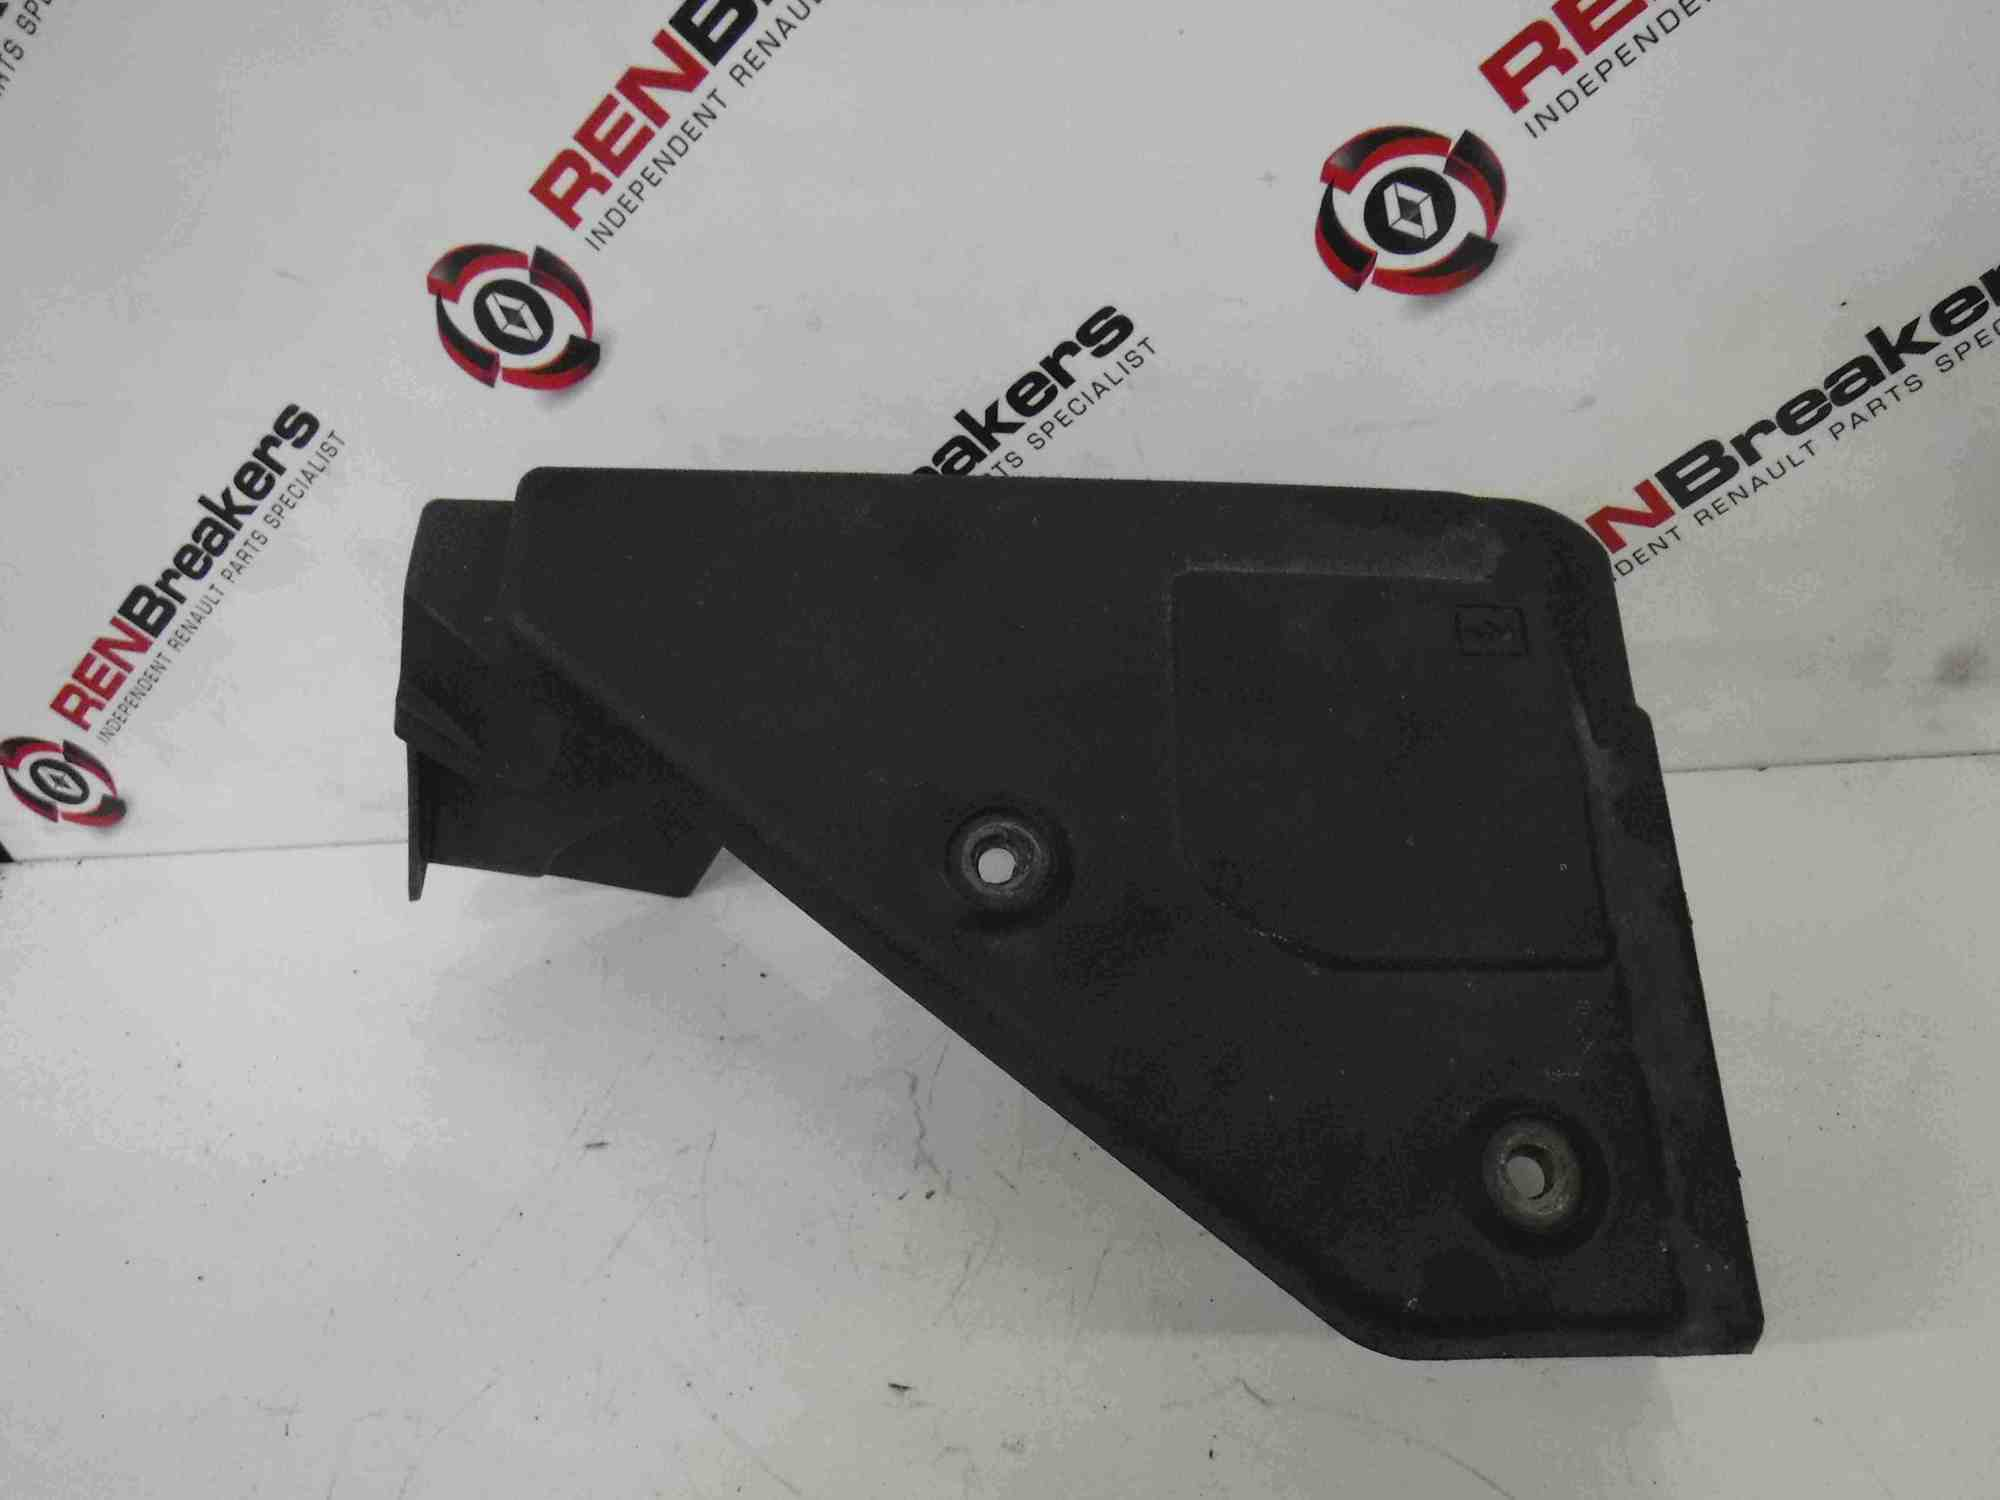 hight resolution of renault kangoo 2007 2017 fuse box cover plastic trim cover 8200379685 8200451648